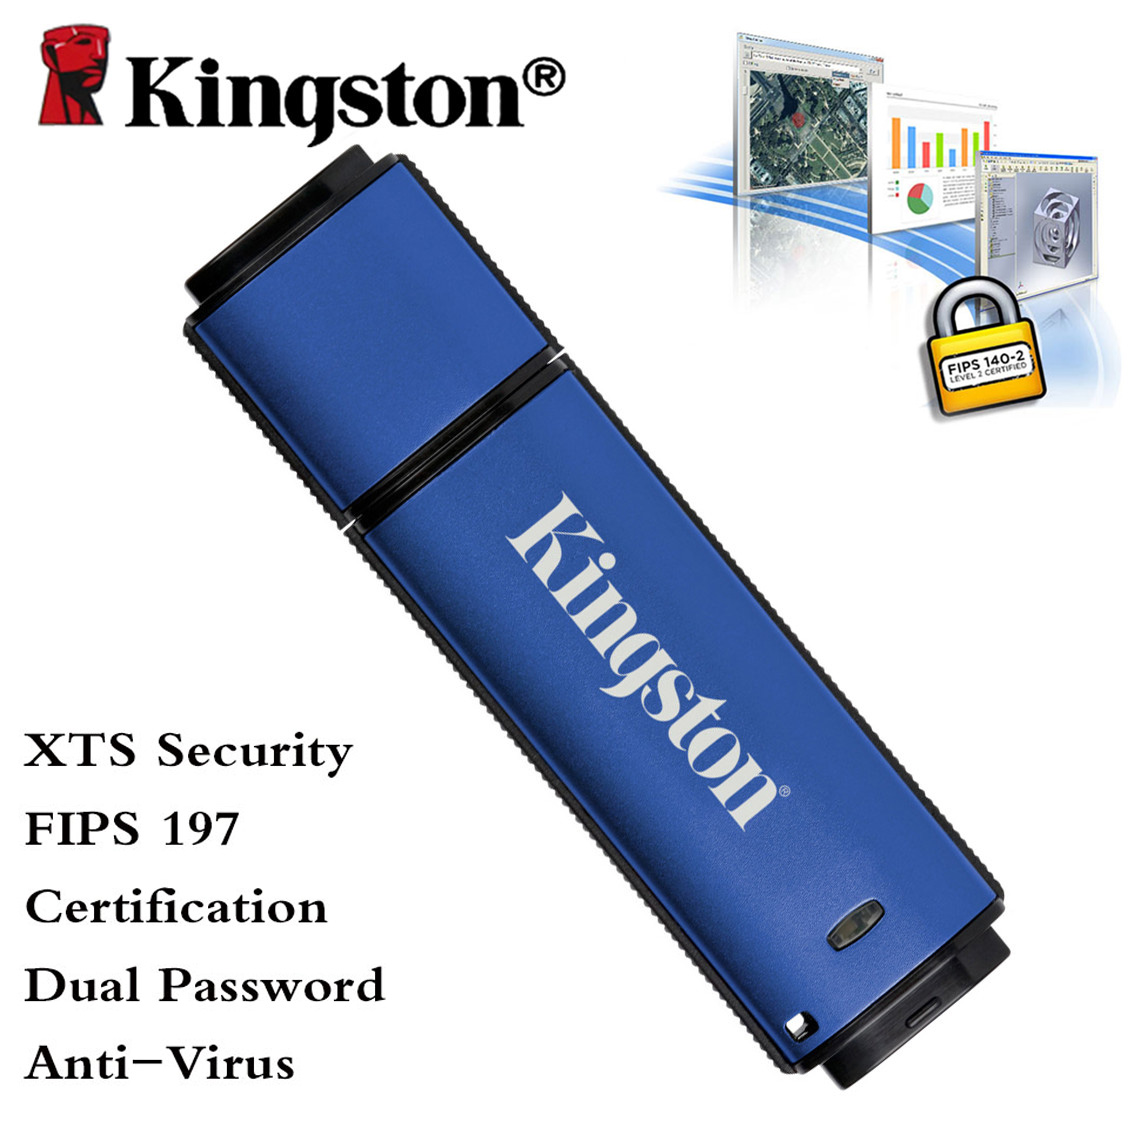 Kingston cle usb 3.0 flash memory pen driver portable storage stick 8gb microDuo usb otg(China (Mainland))